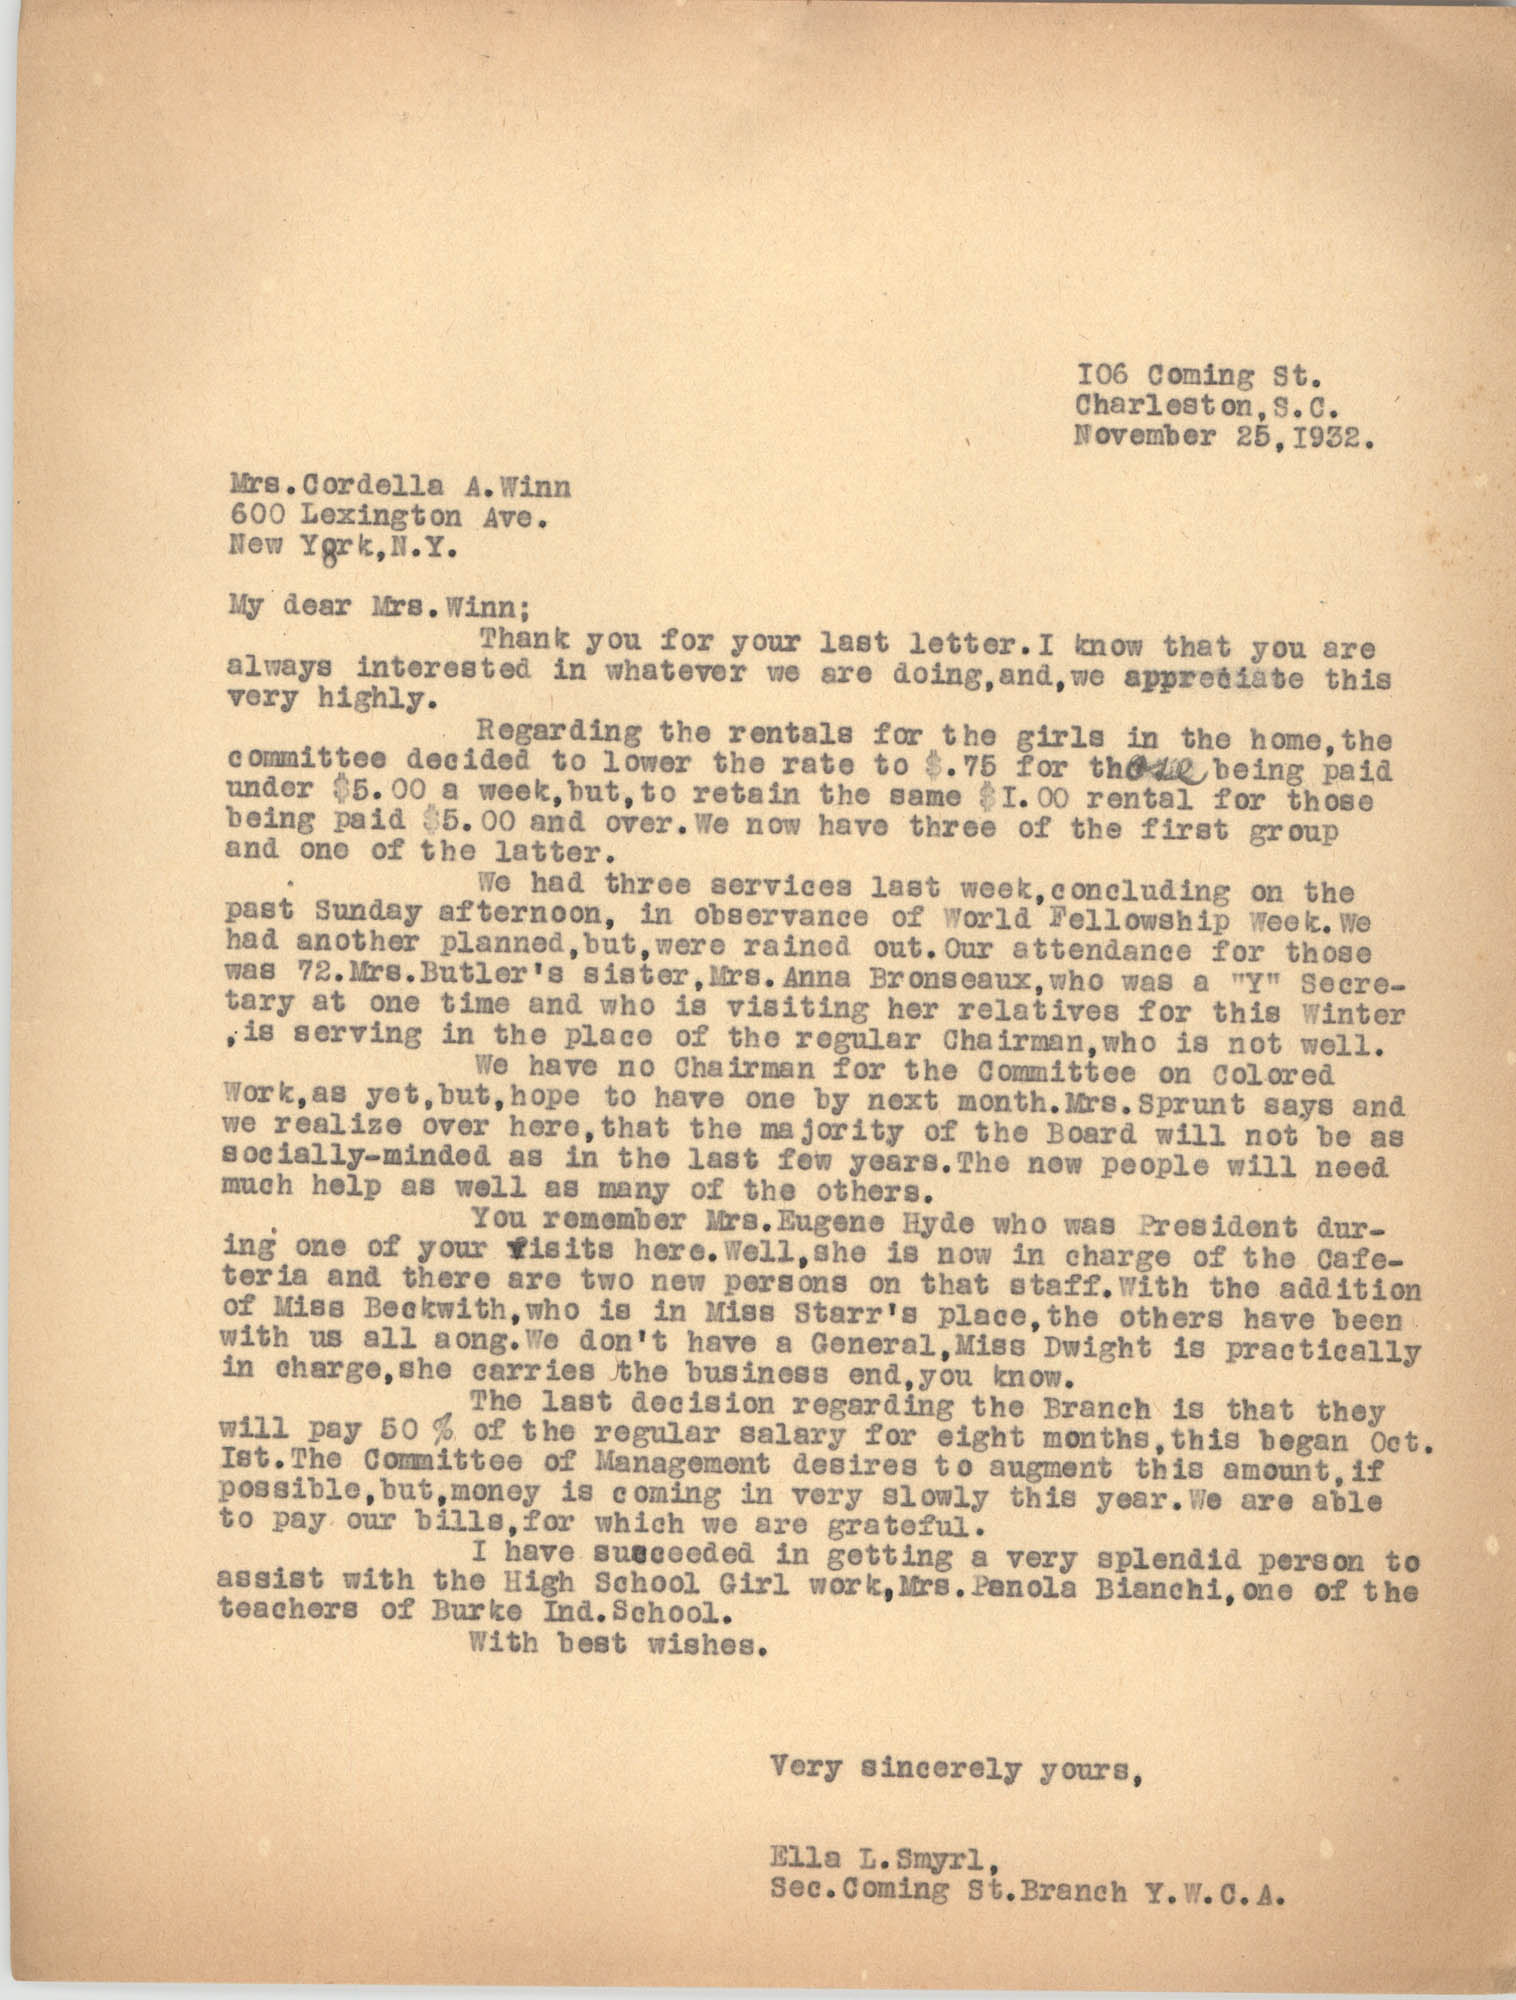 Letter from Ella L. Smyrl to Cordella A. Winn, November 25, 1932